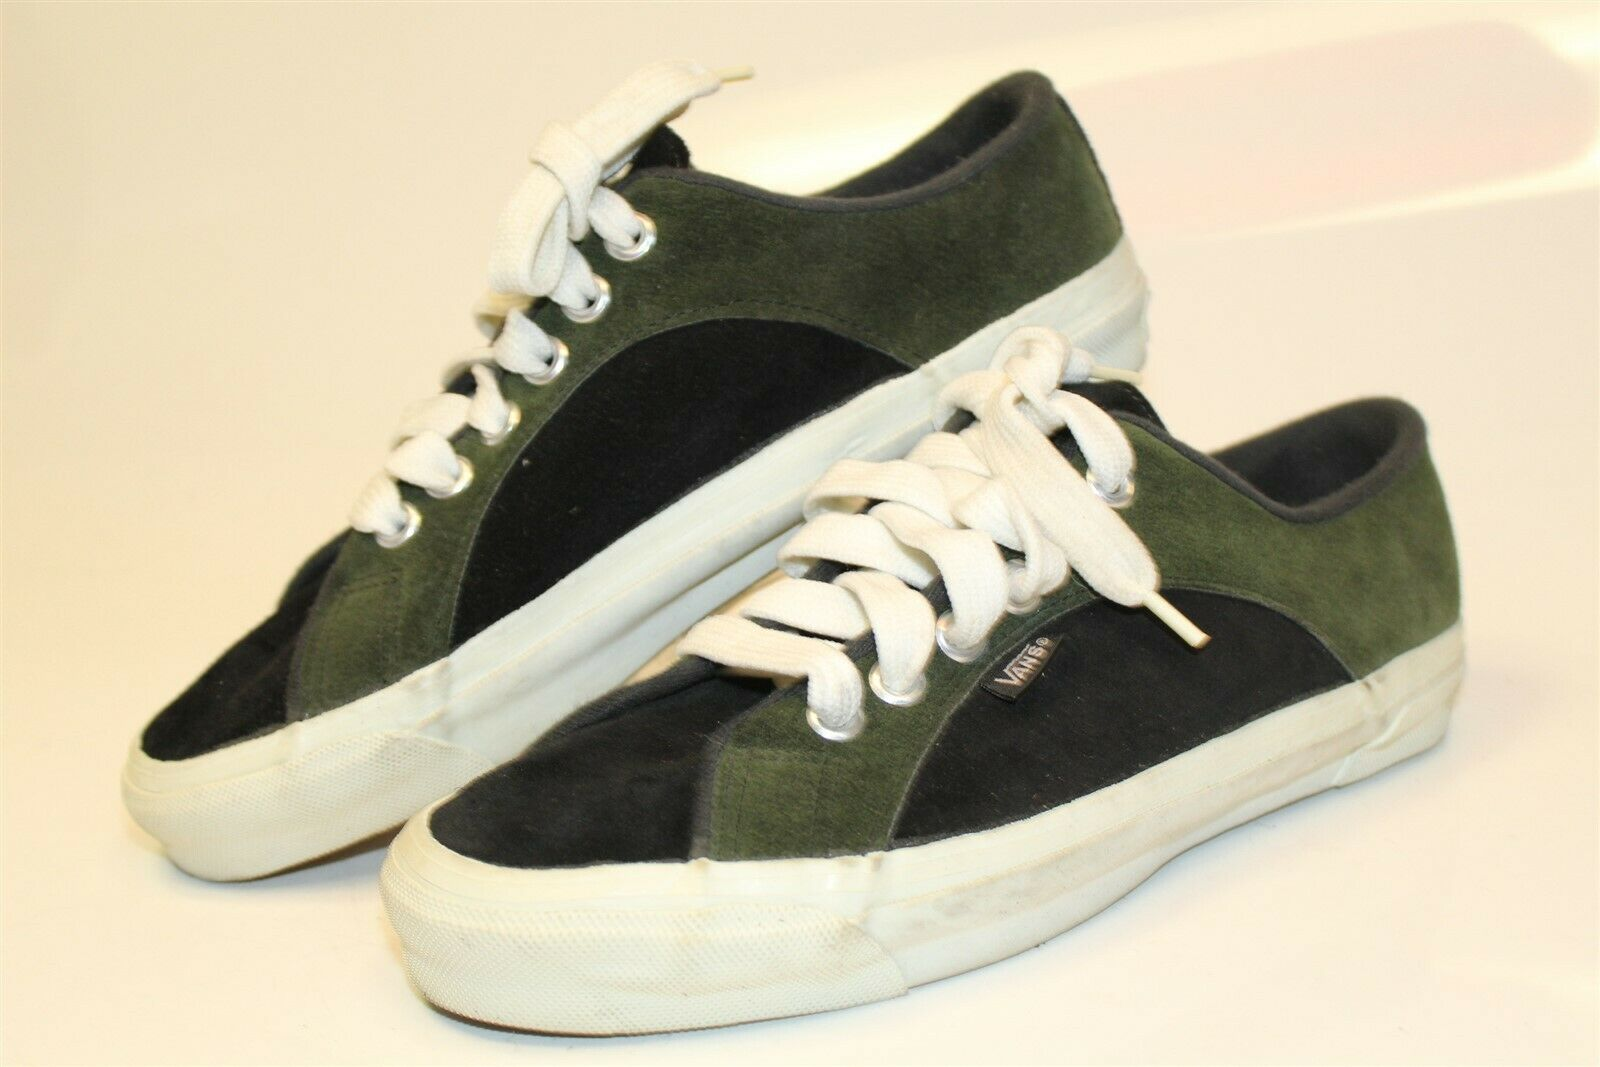 VANS Vintage USA Made 90's OG Rare Suede Leather Skateboard Sneakers Skate Shoes